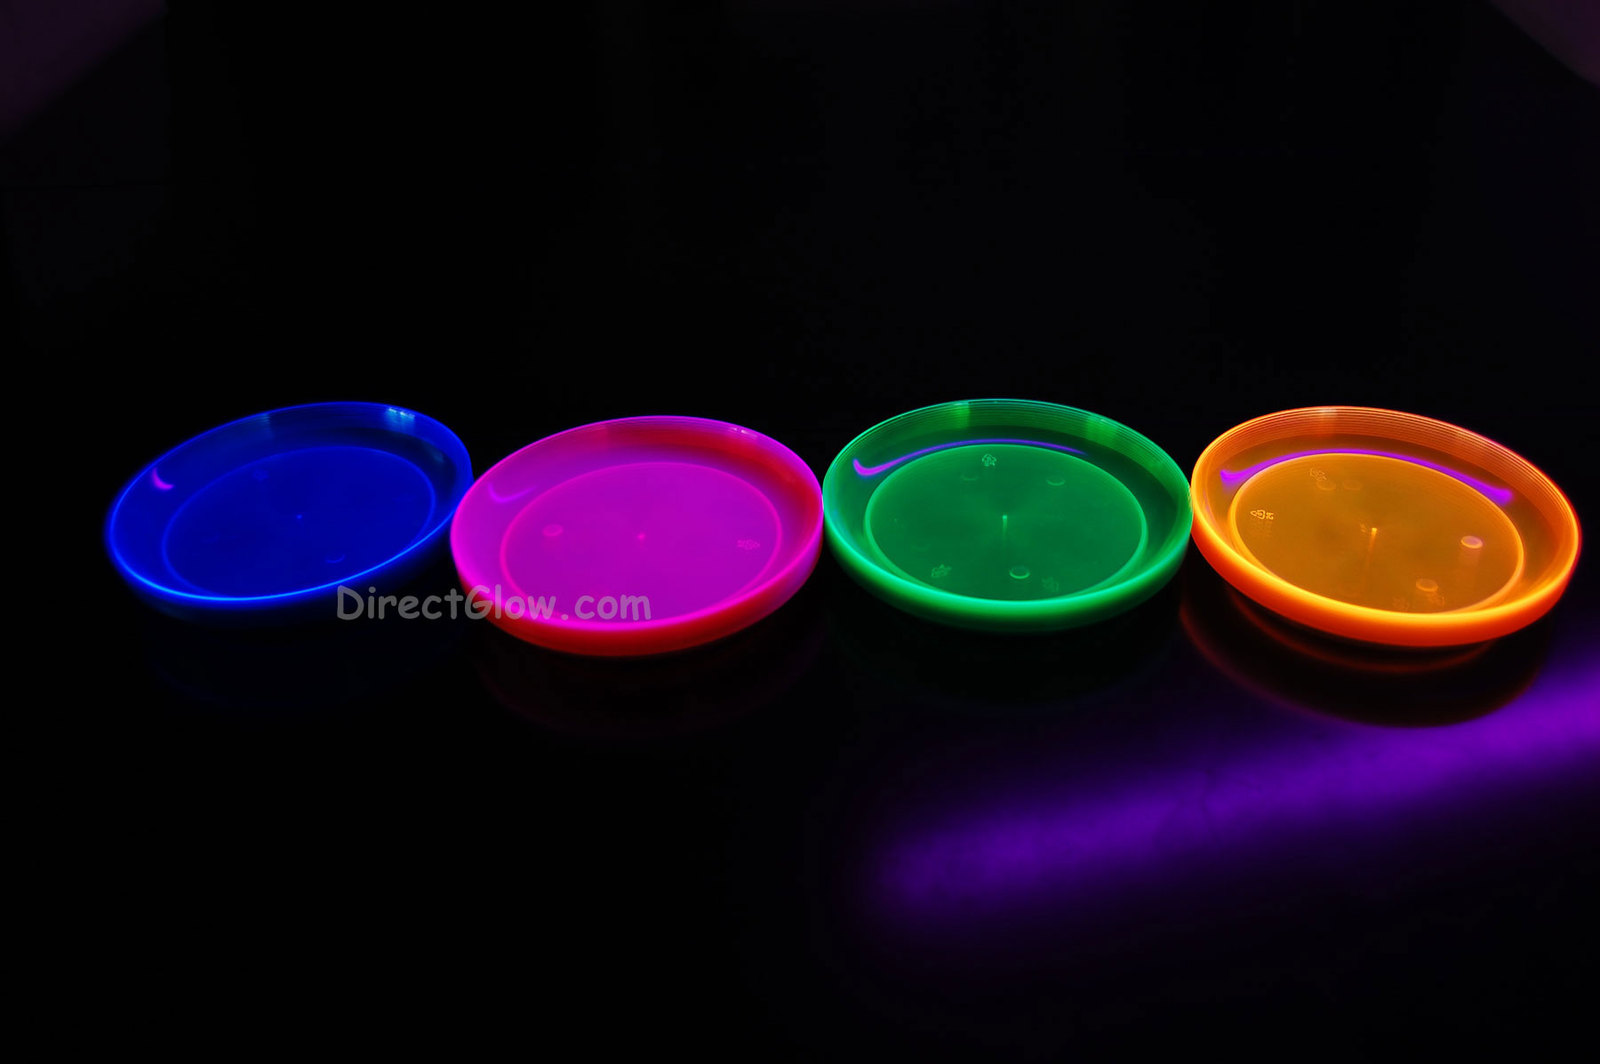 Blacklight Reactive 6 Inch 40ct Plastic Party Plates + FREE Blacklight Balloons